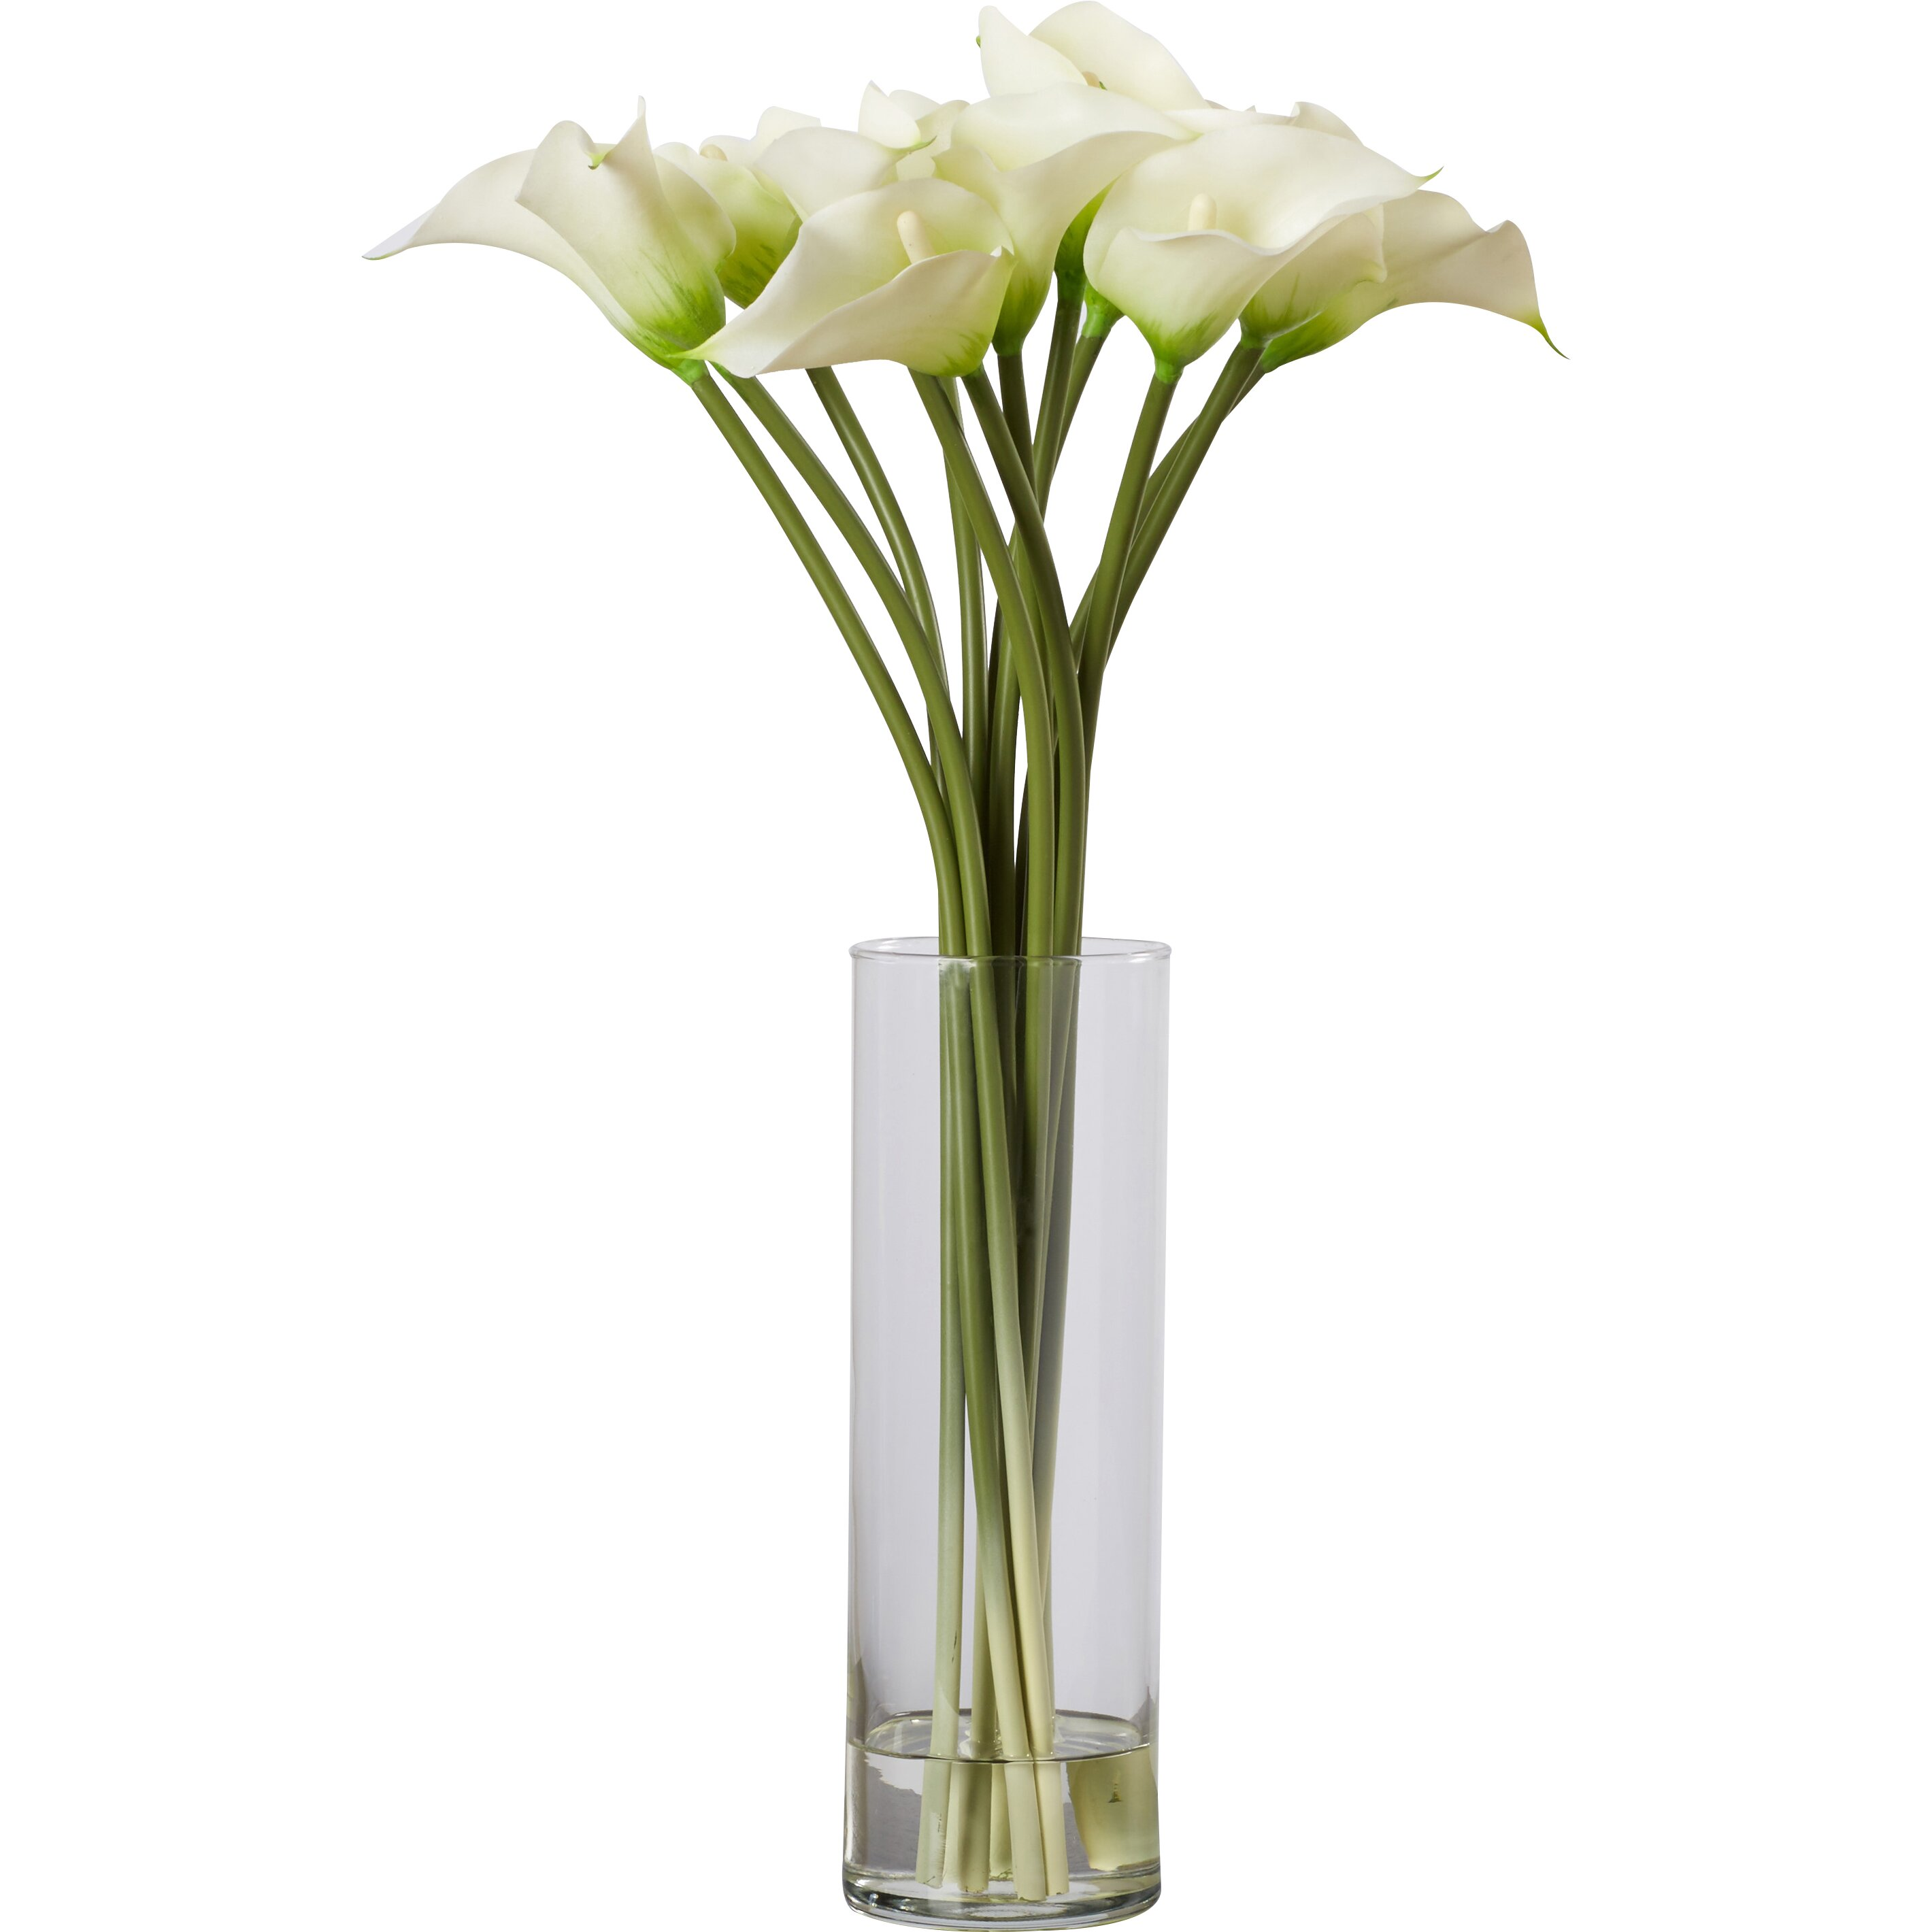 House of hampton calla lily flower arrangement in flower - Flower arrangements for vases ...